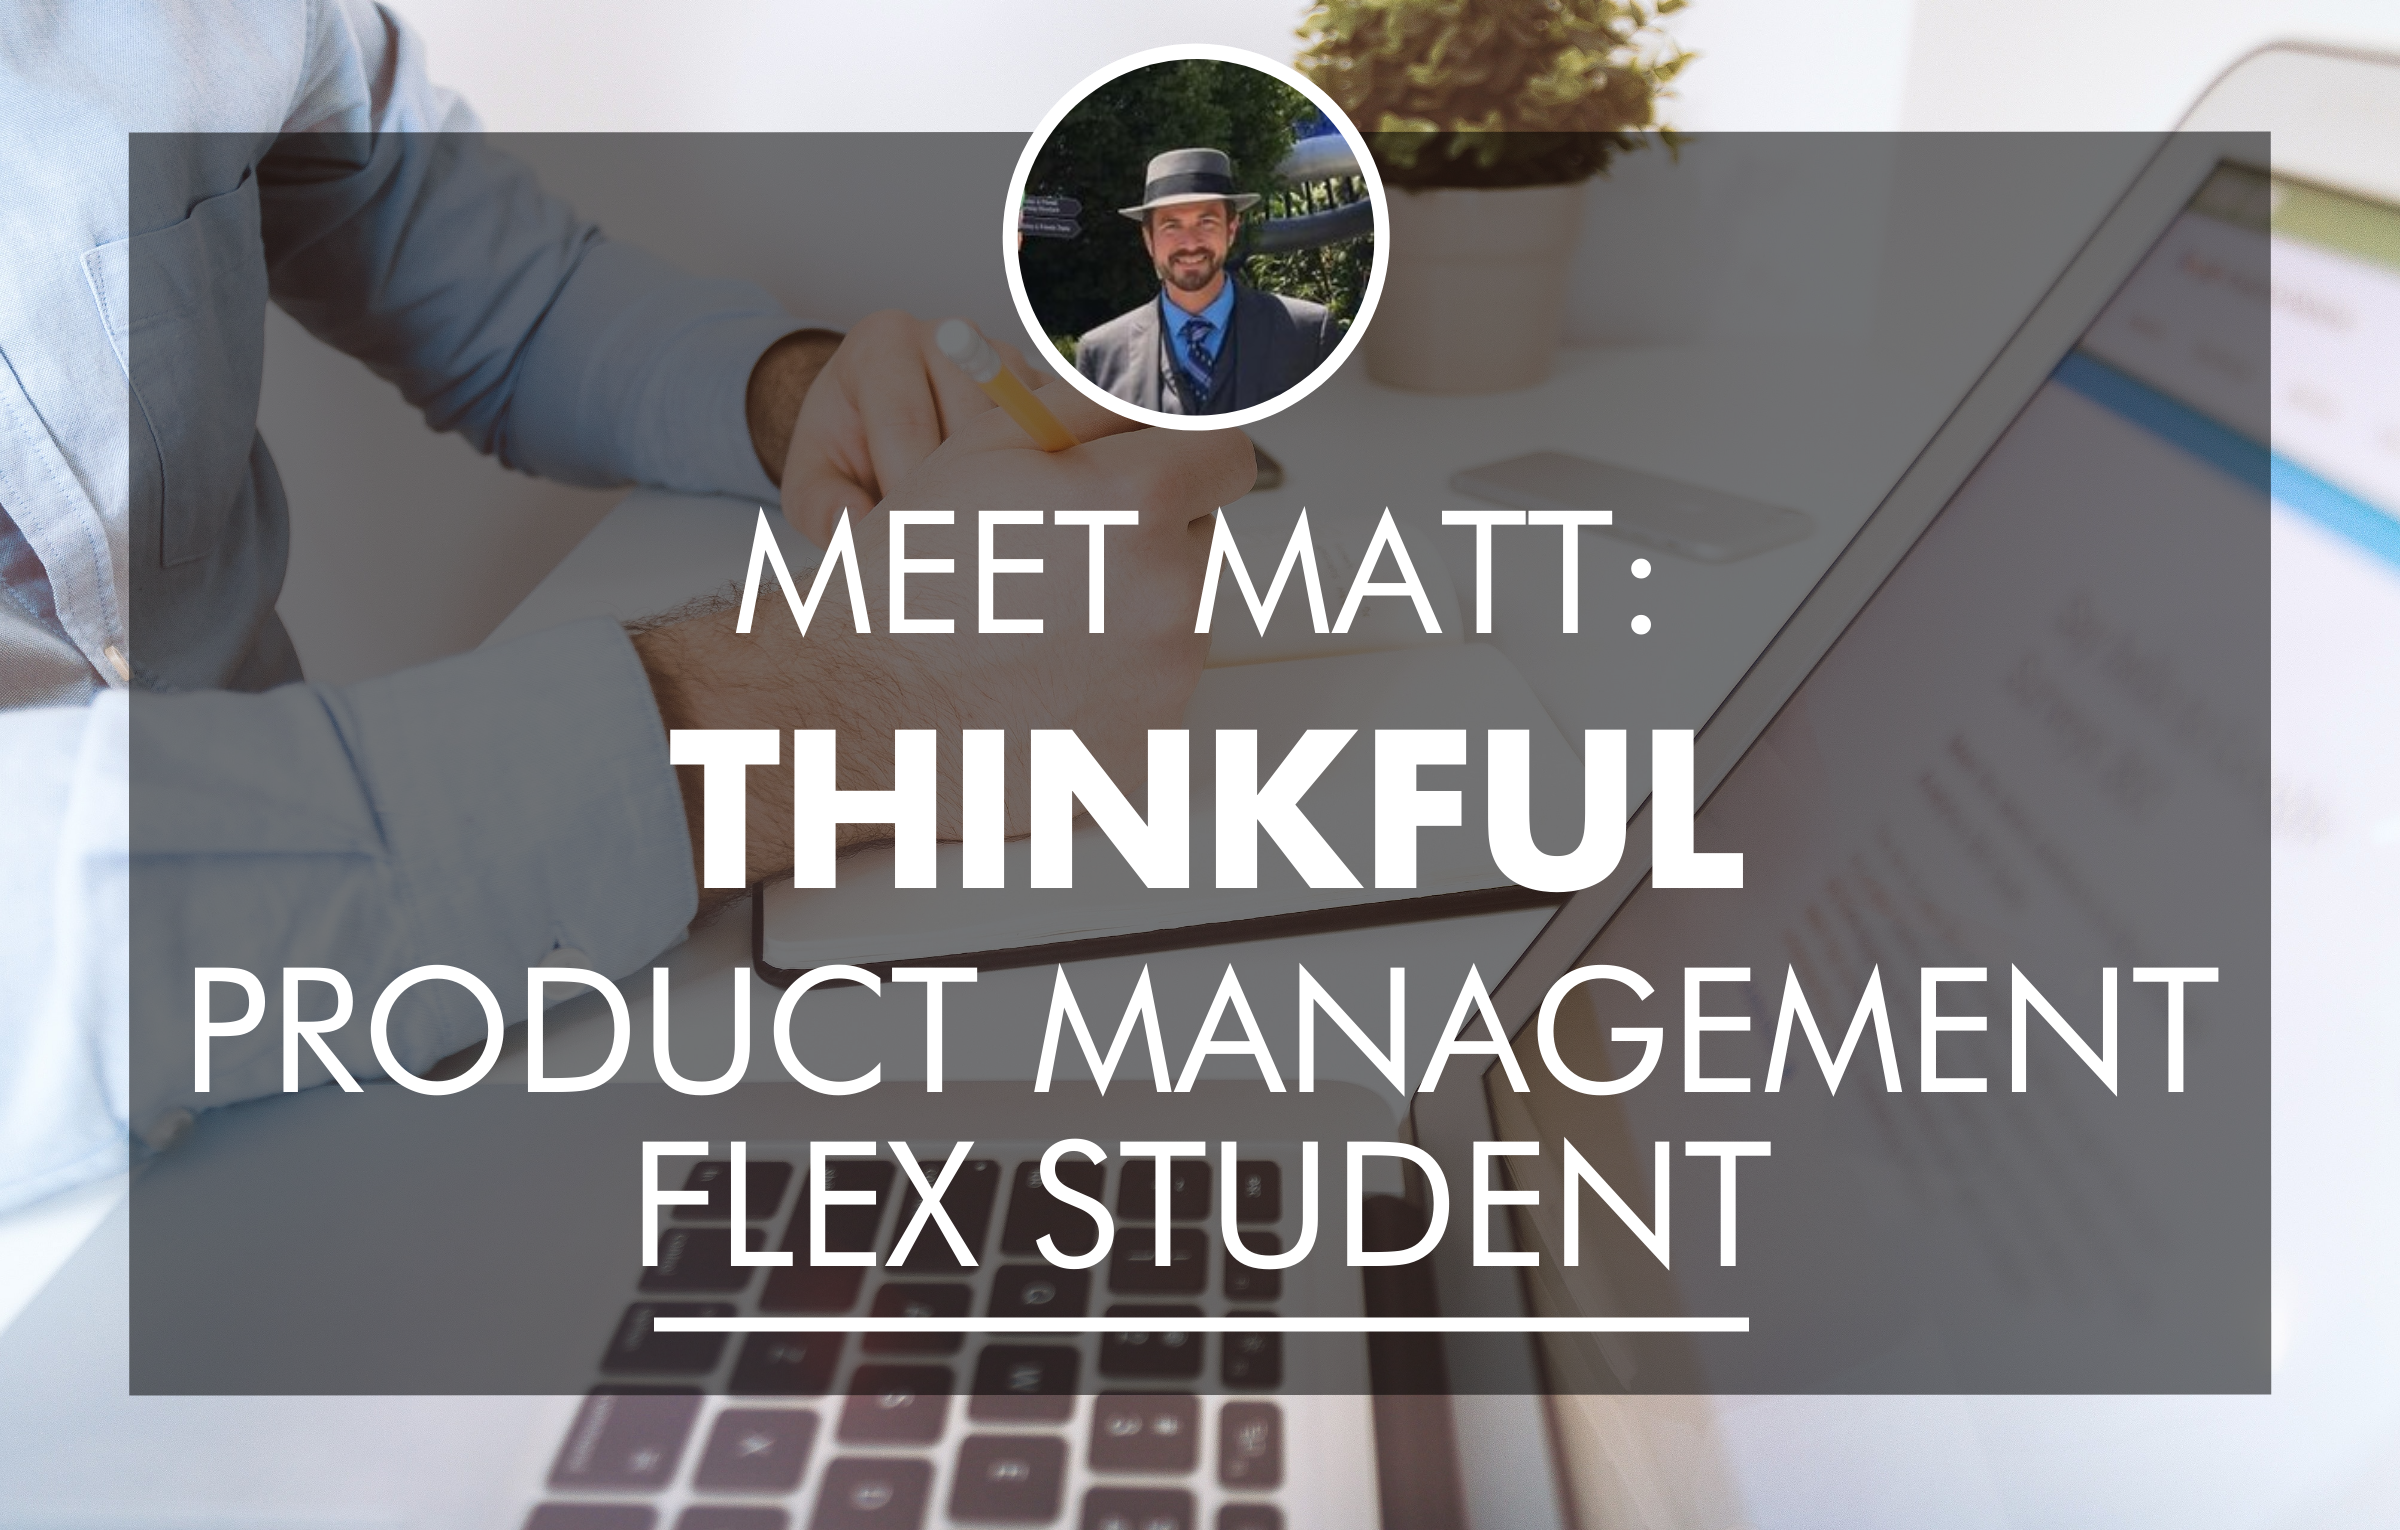 Thinkful Product Management Flex Student Matt Lemcke